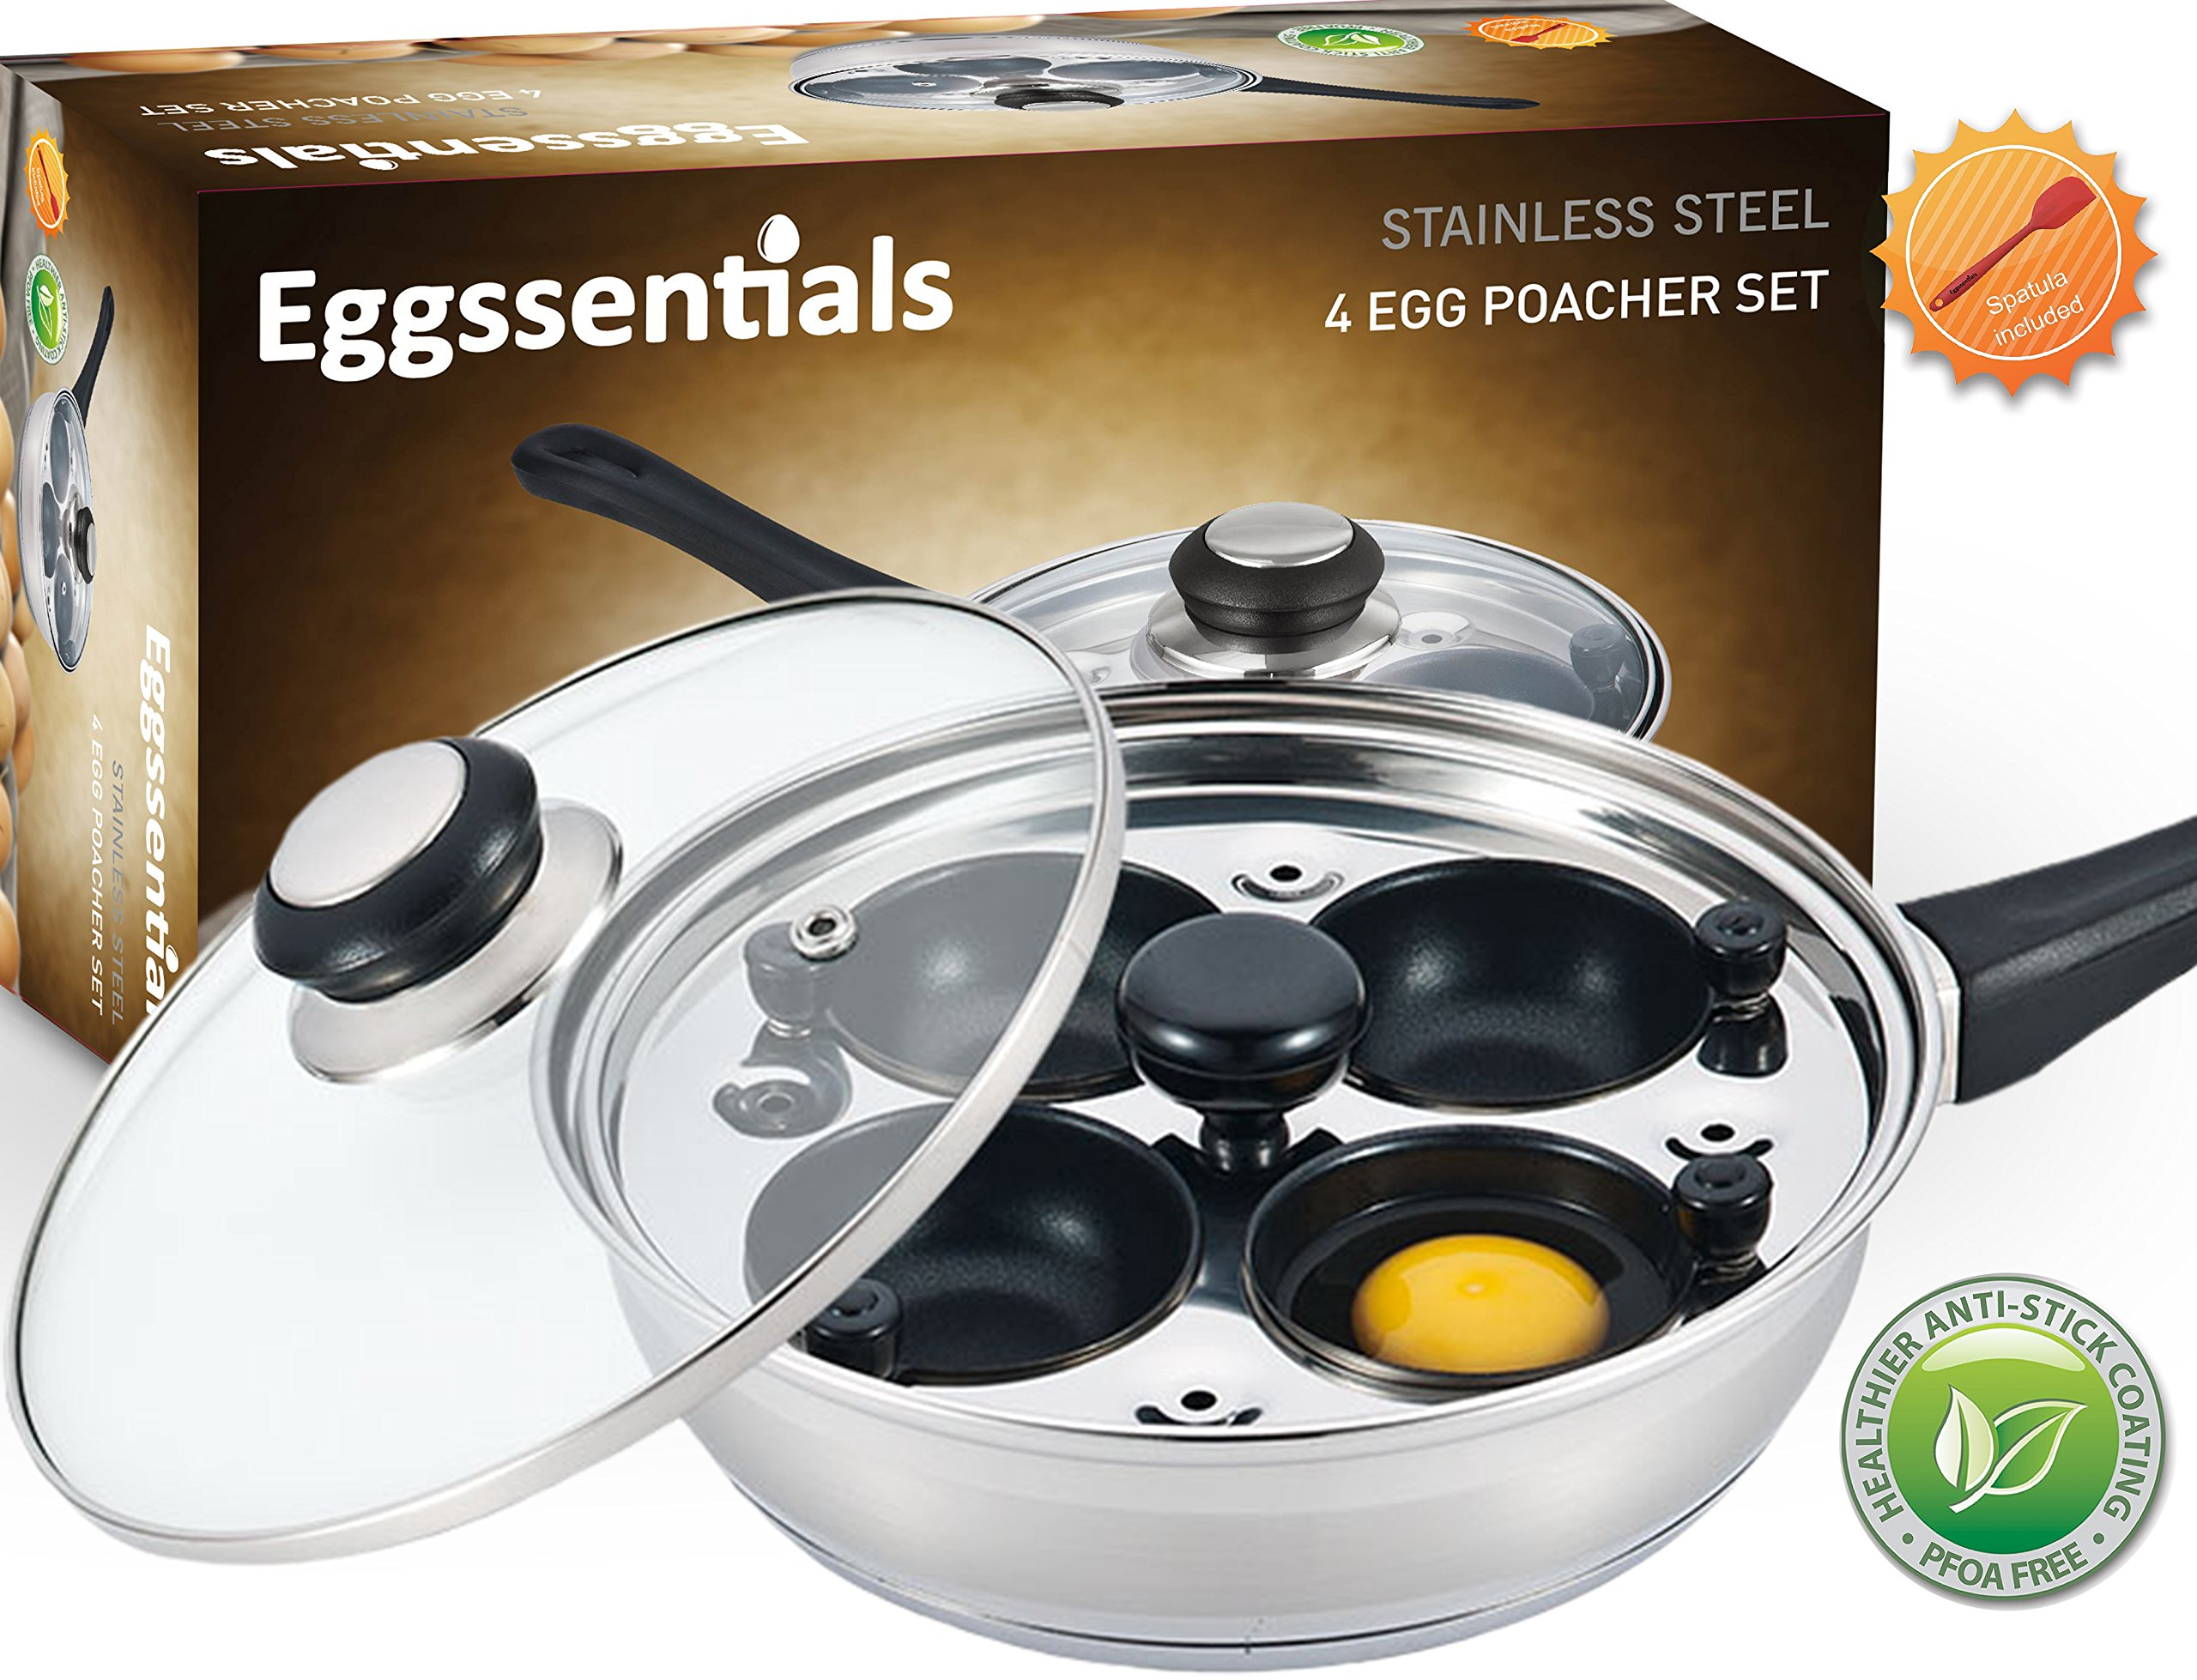 Eggssentials Poached Egg Maker - Nonstick 4 Egg Poaching Cups - Stainless Steel Egg Poacher Pan FDA Certified Food Grade Safe PFOA Free With Bonus Spatula by PremiumWares (Image #1)